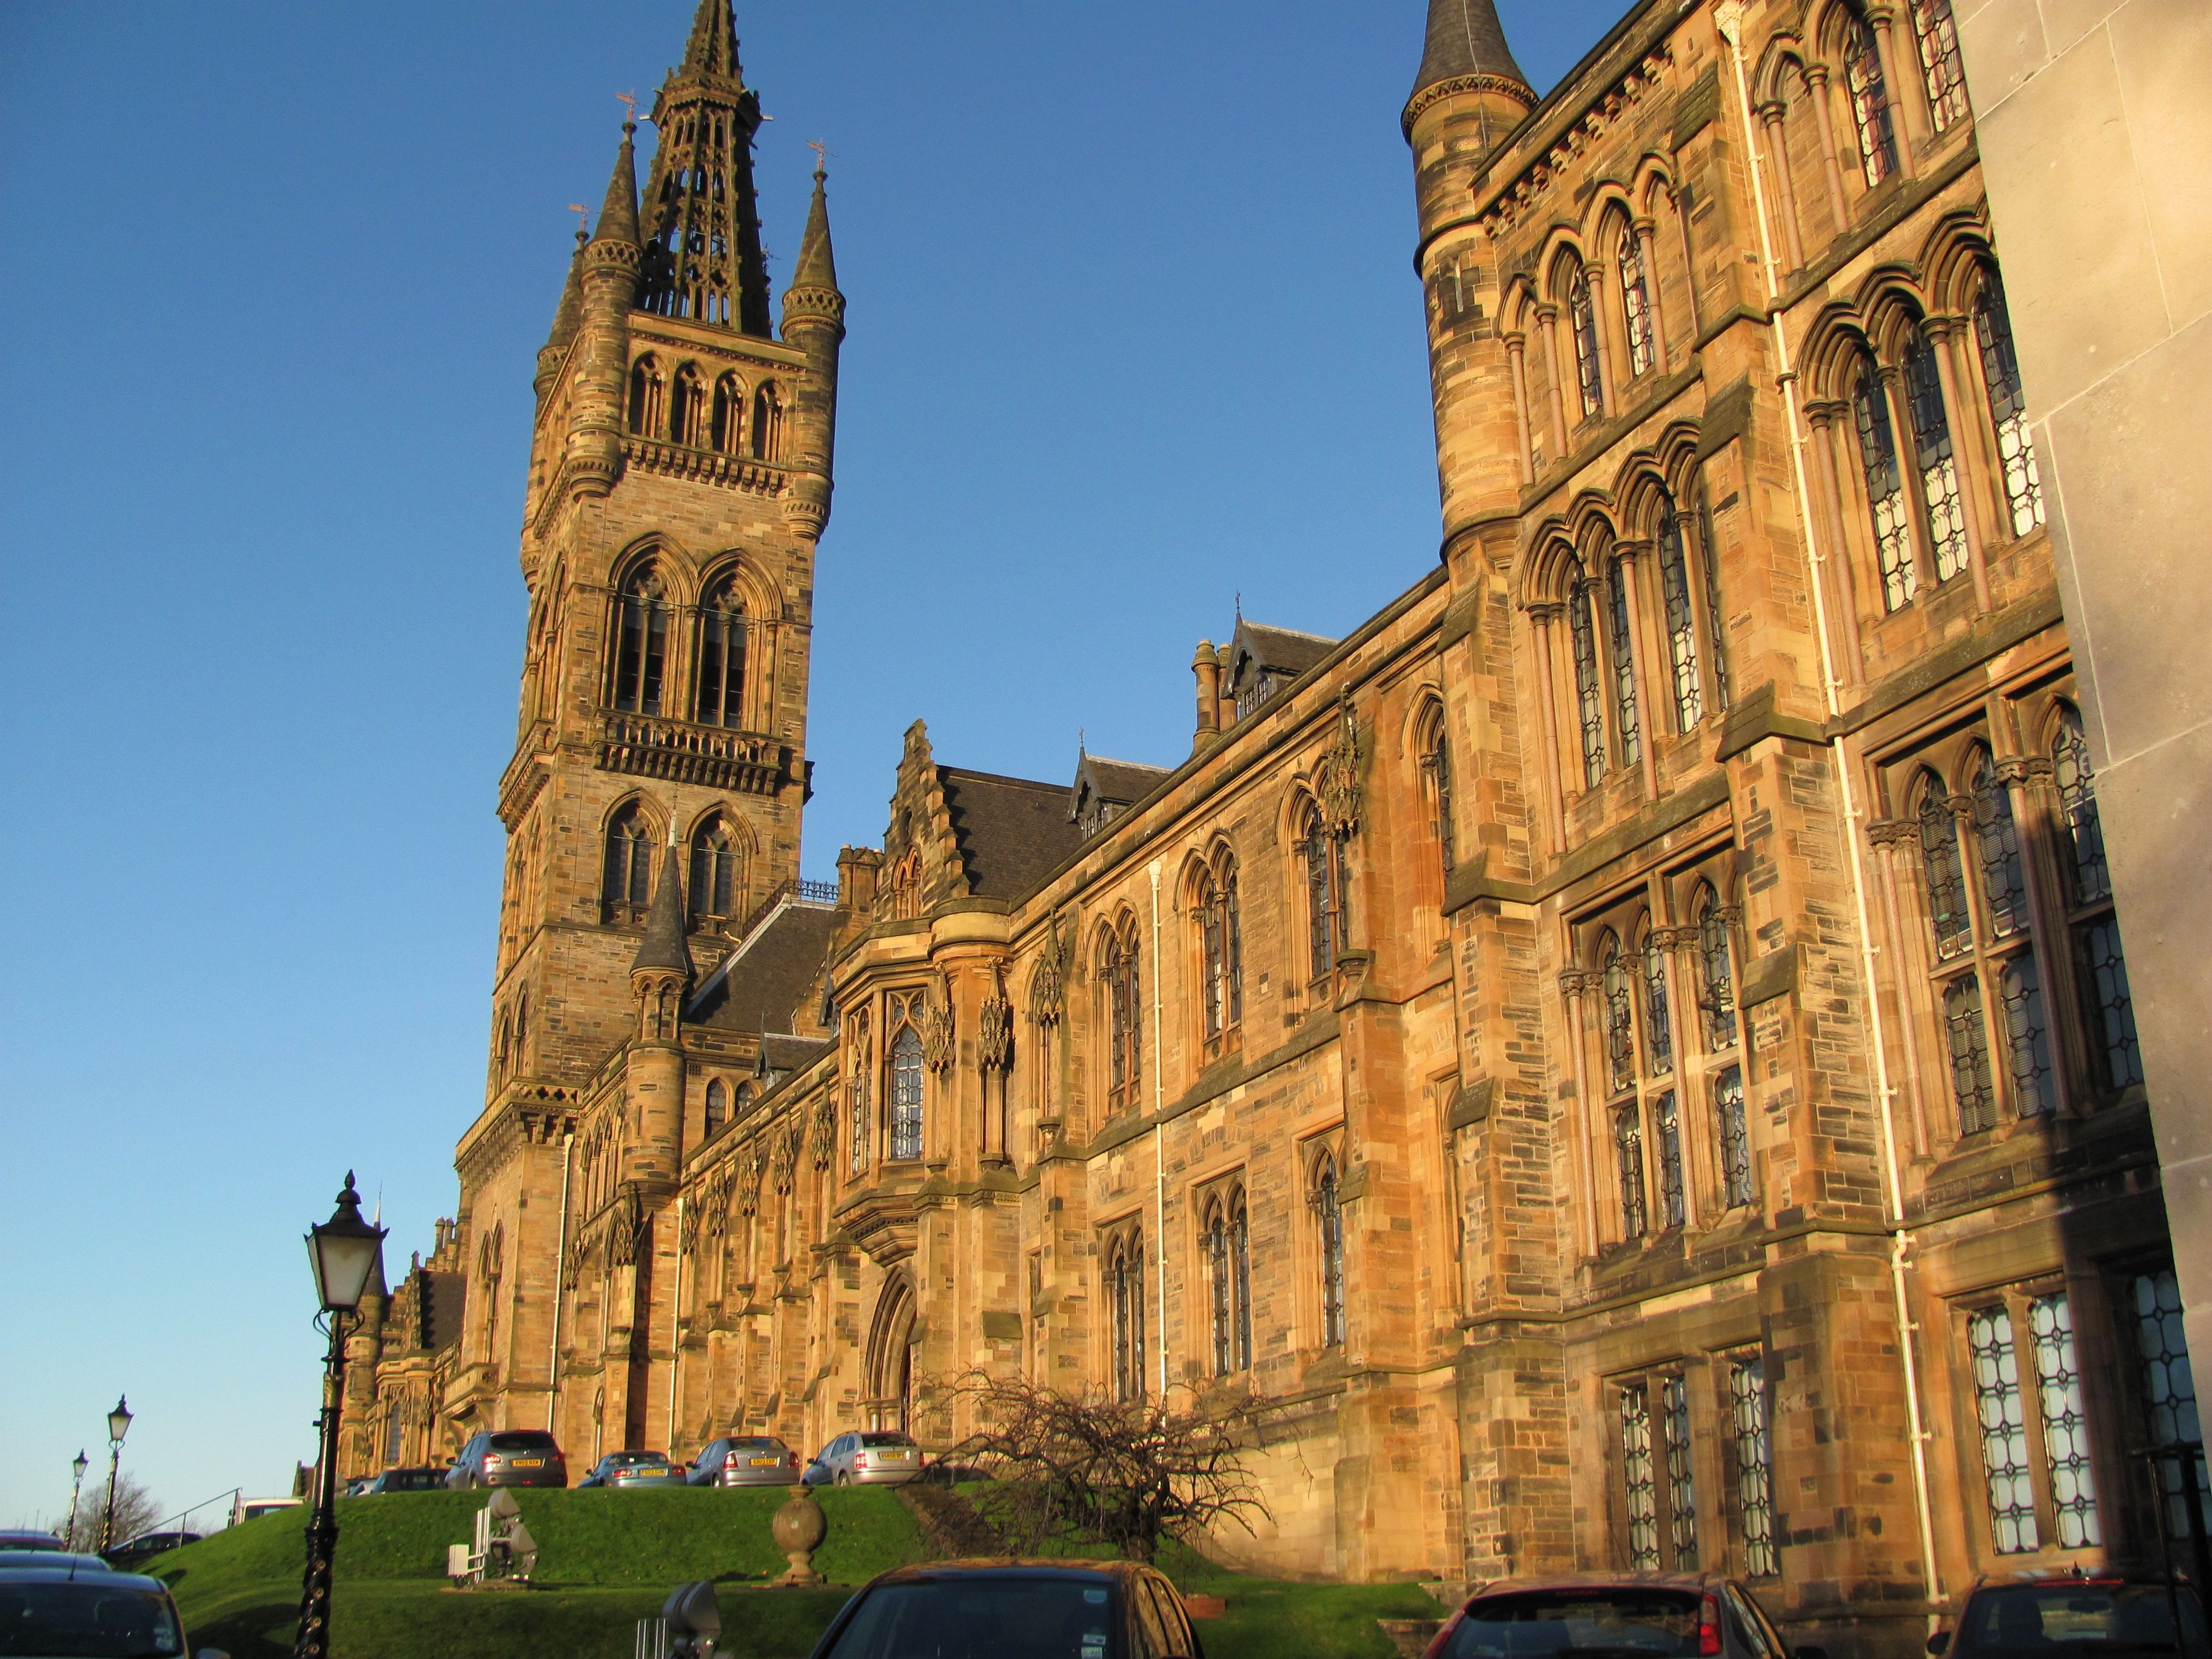 Glasgow University Such A Majestic Old Building Reminiscent Of The Harry Potter School Campus Glasgow University School Campus Old Building